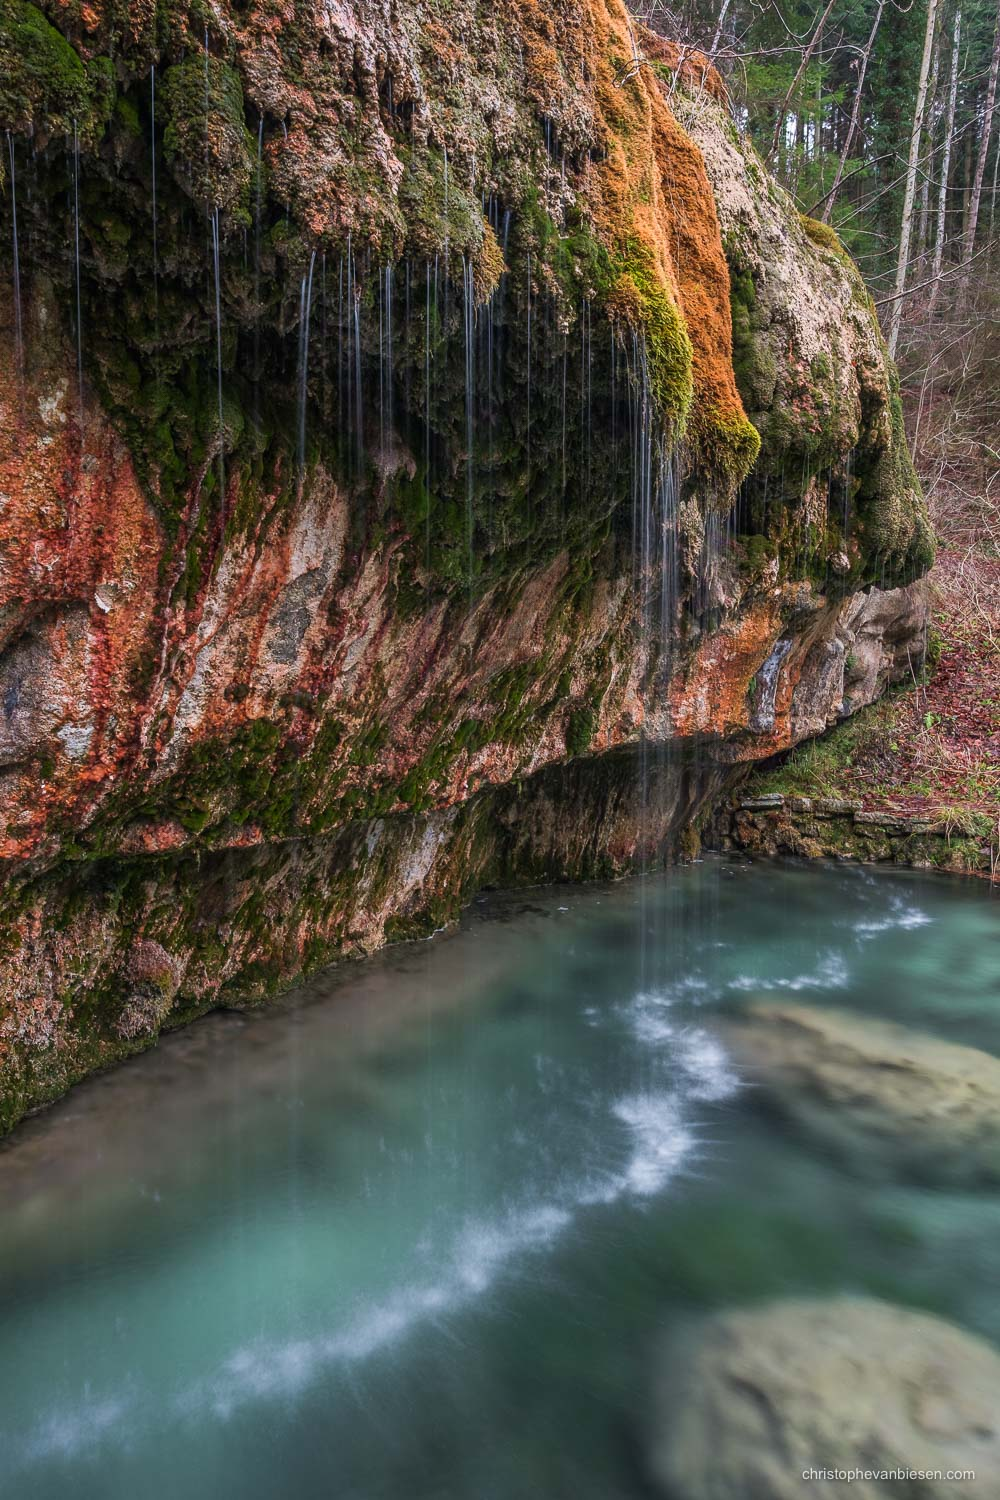 Photography Workshop Mullerthal - Luxembourg - Waterfall in the Mullerthal, Luxembourg's Little Switzerland - Crystal Pool